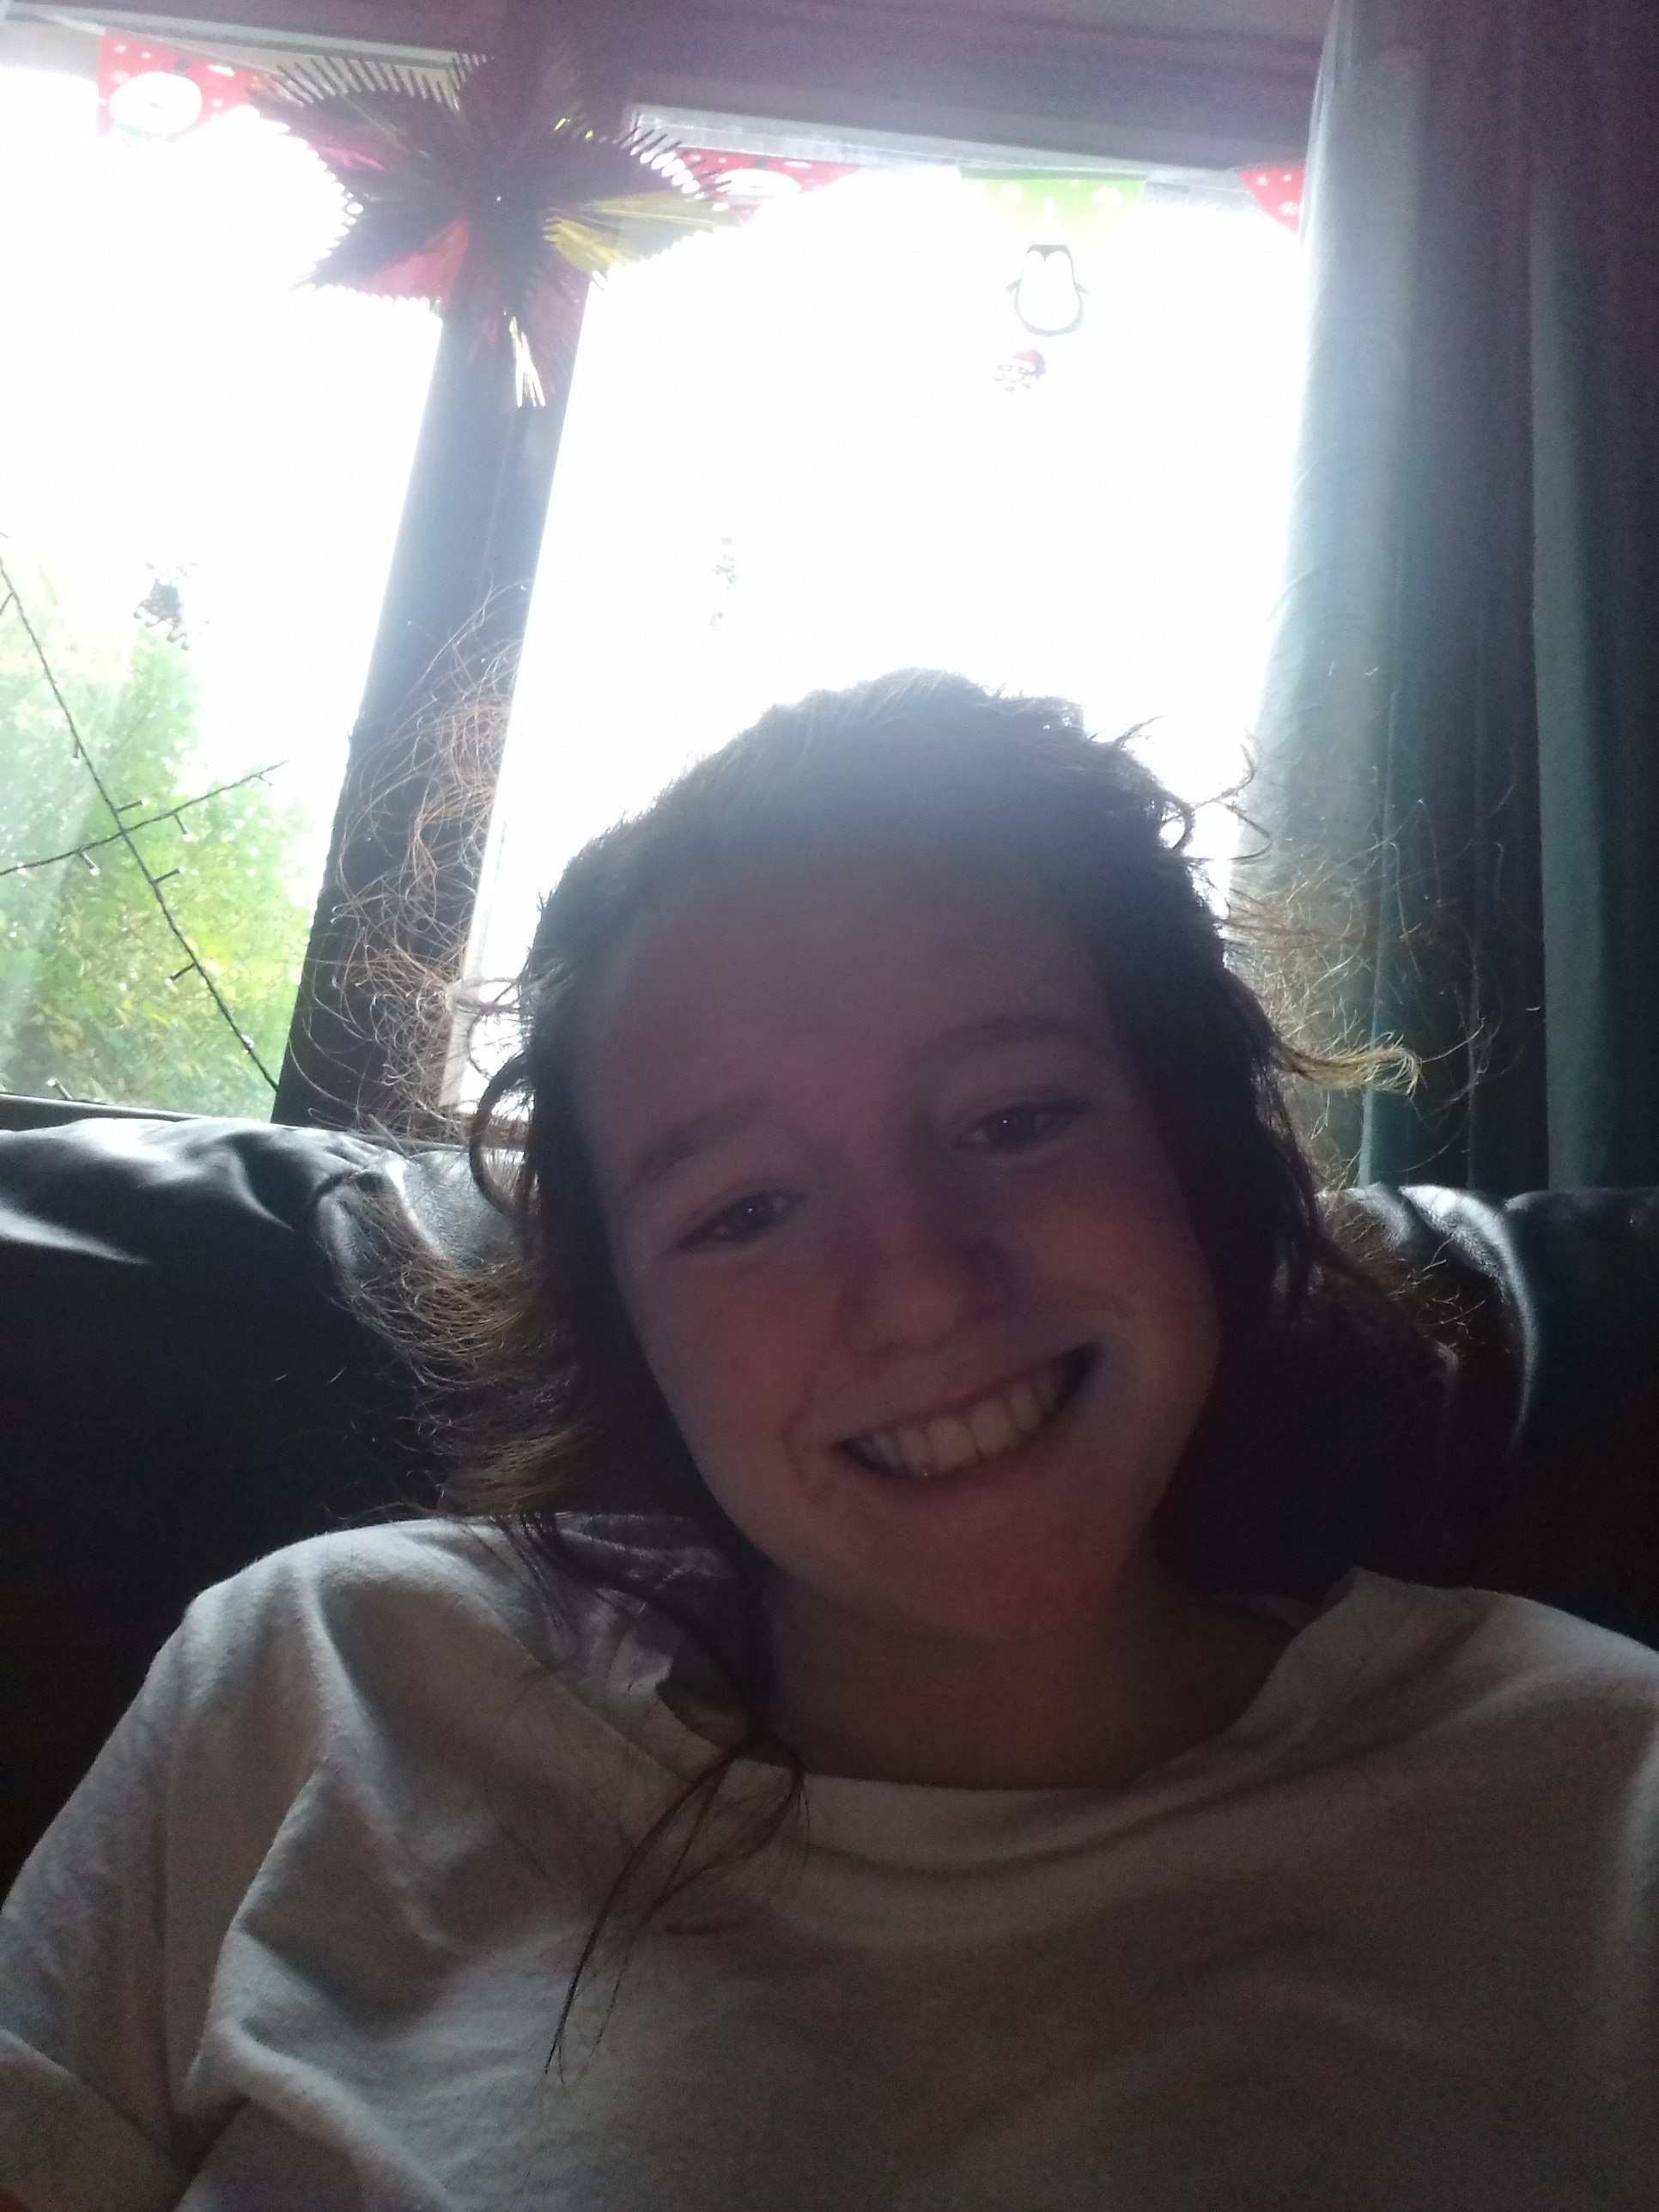 Missing: Have you seen Laura Brooker?